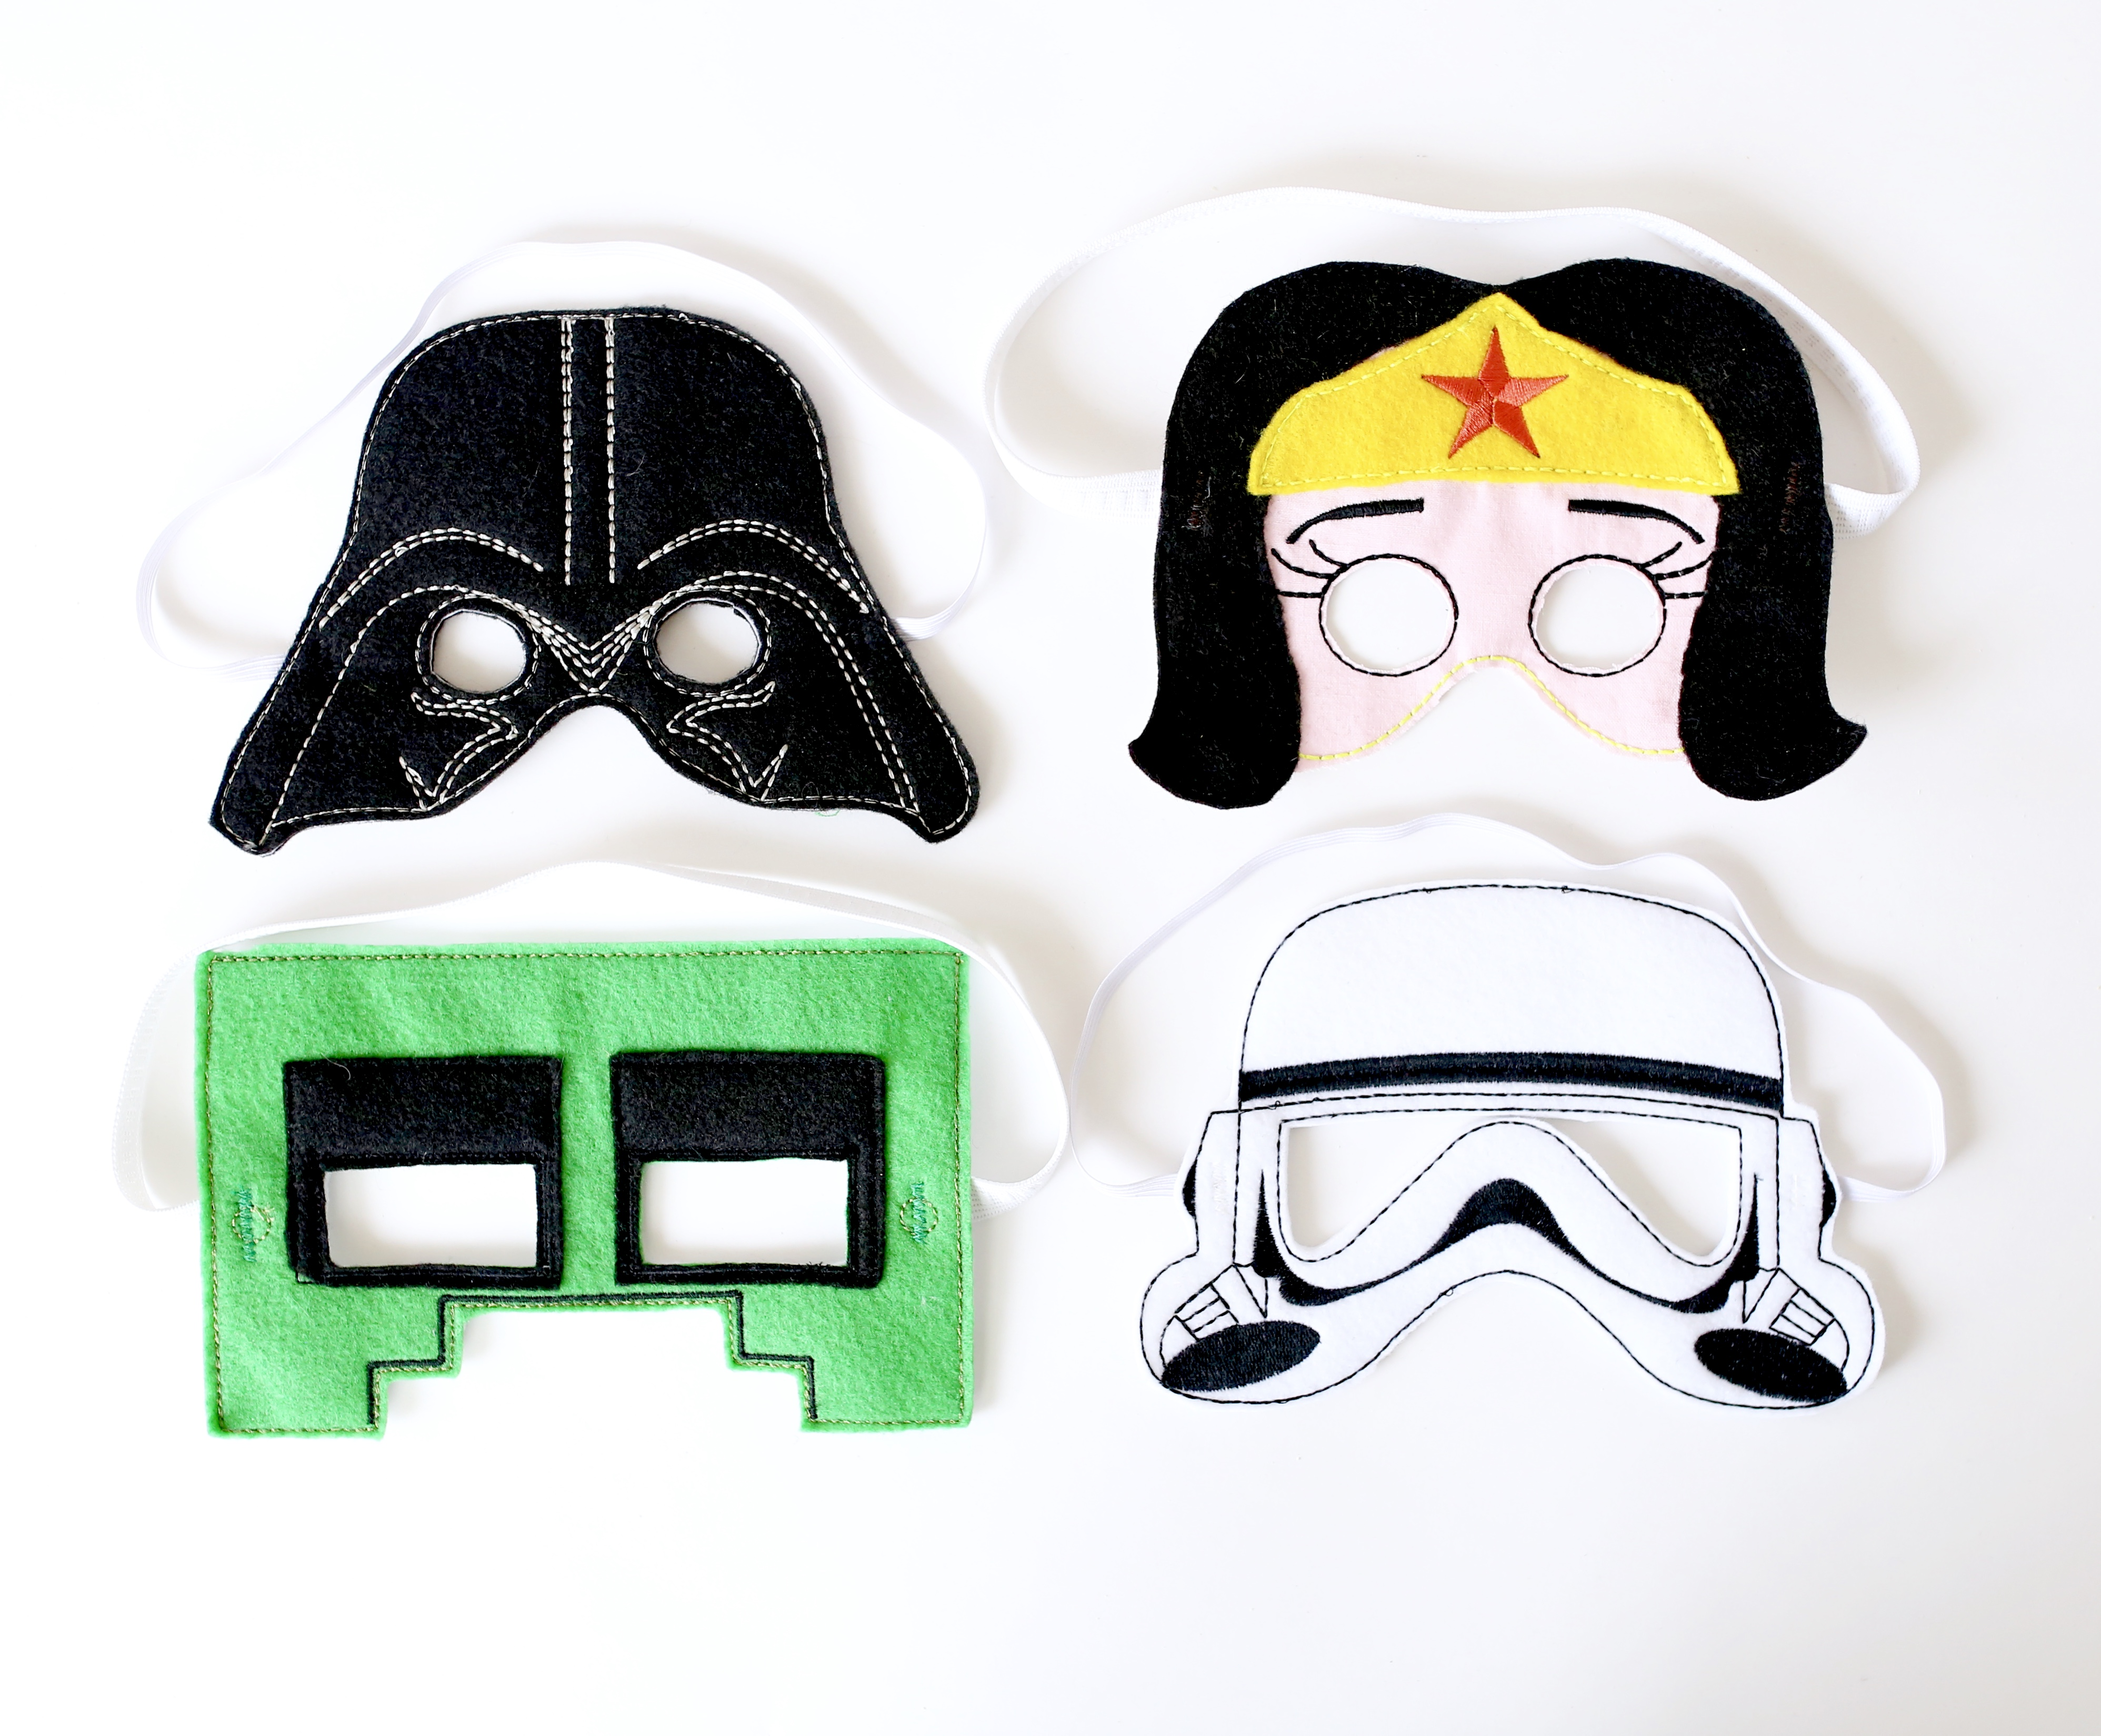 Super Hero Masks: ITHEmbroidery Janome Memory Craft 500e 2